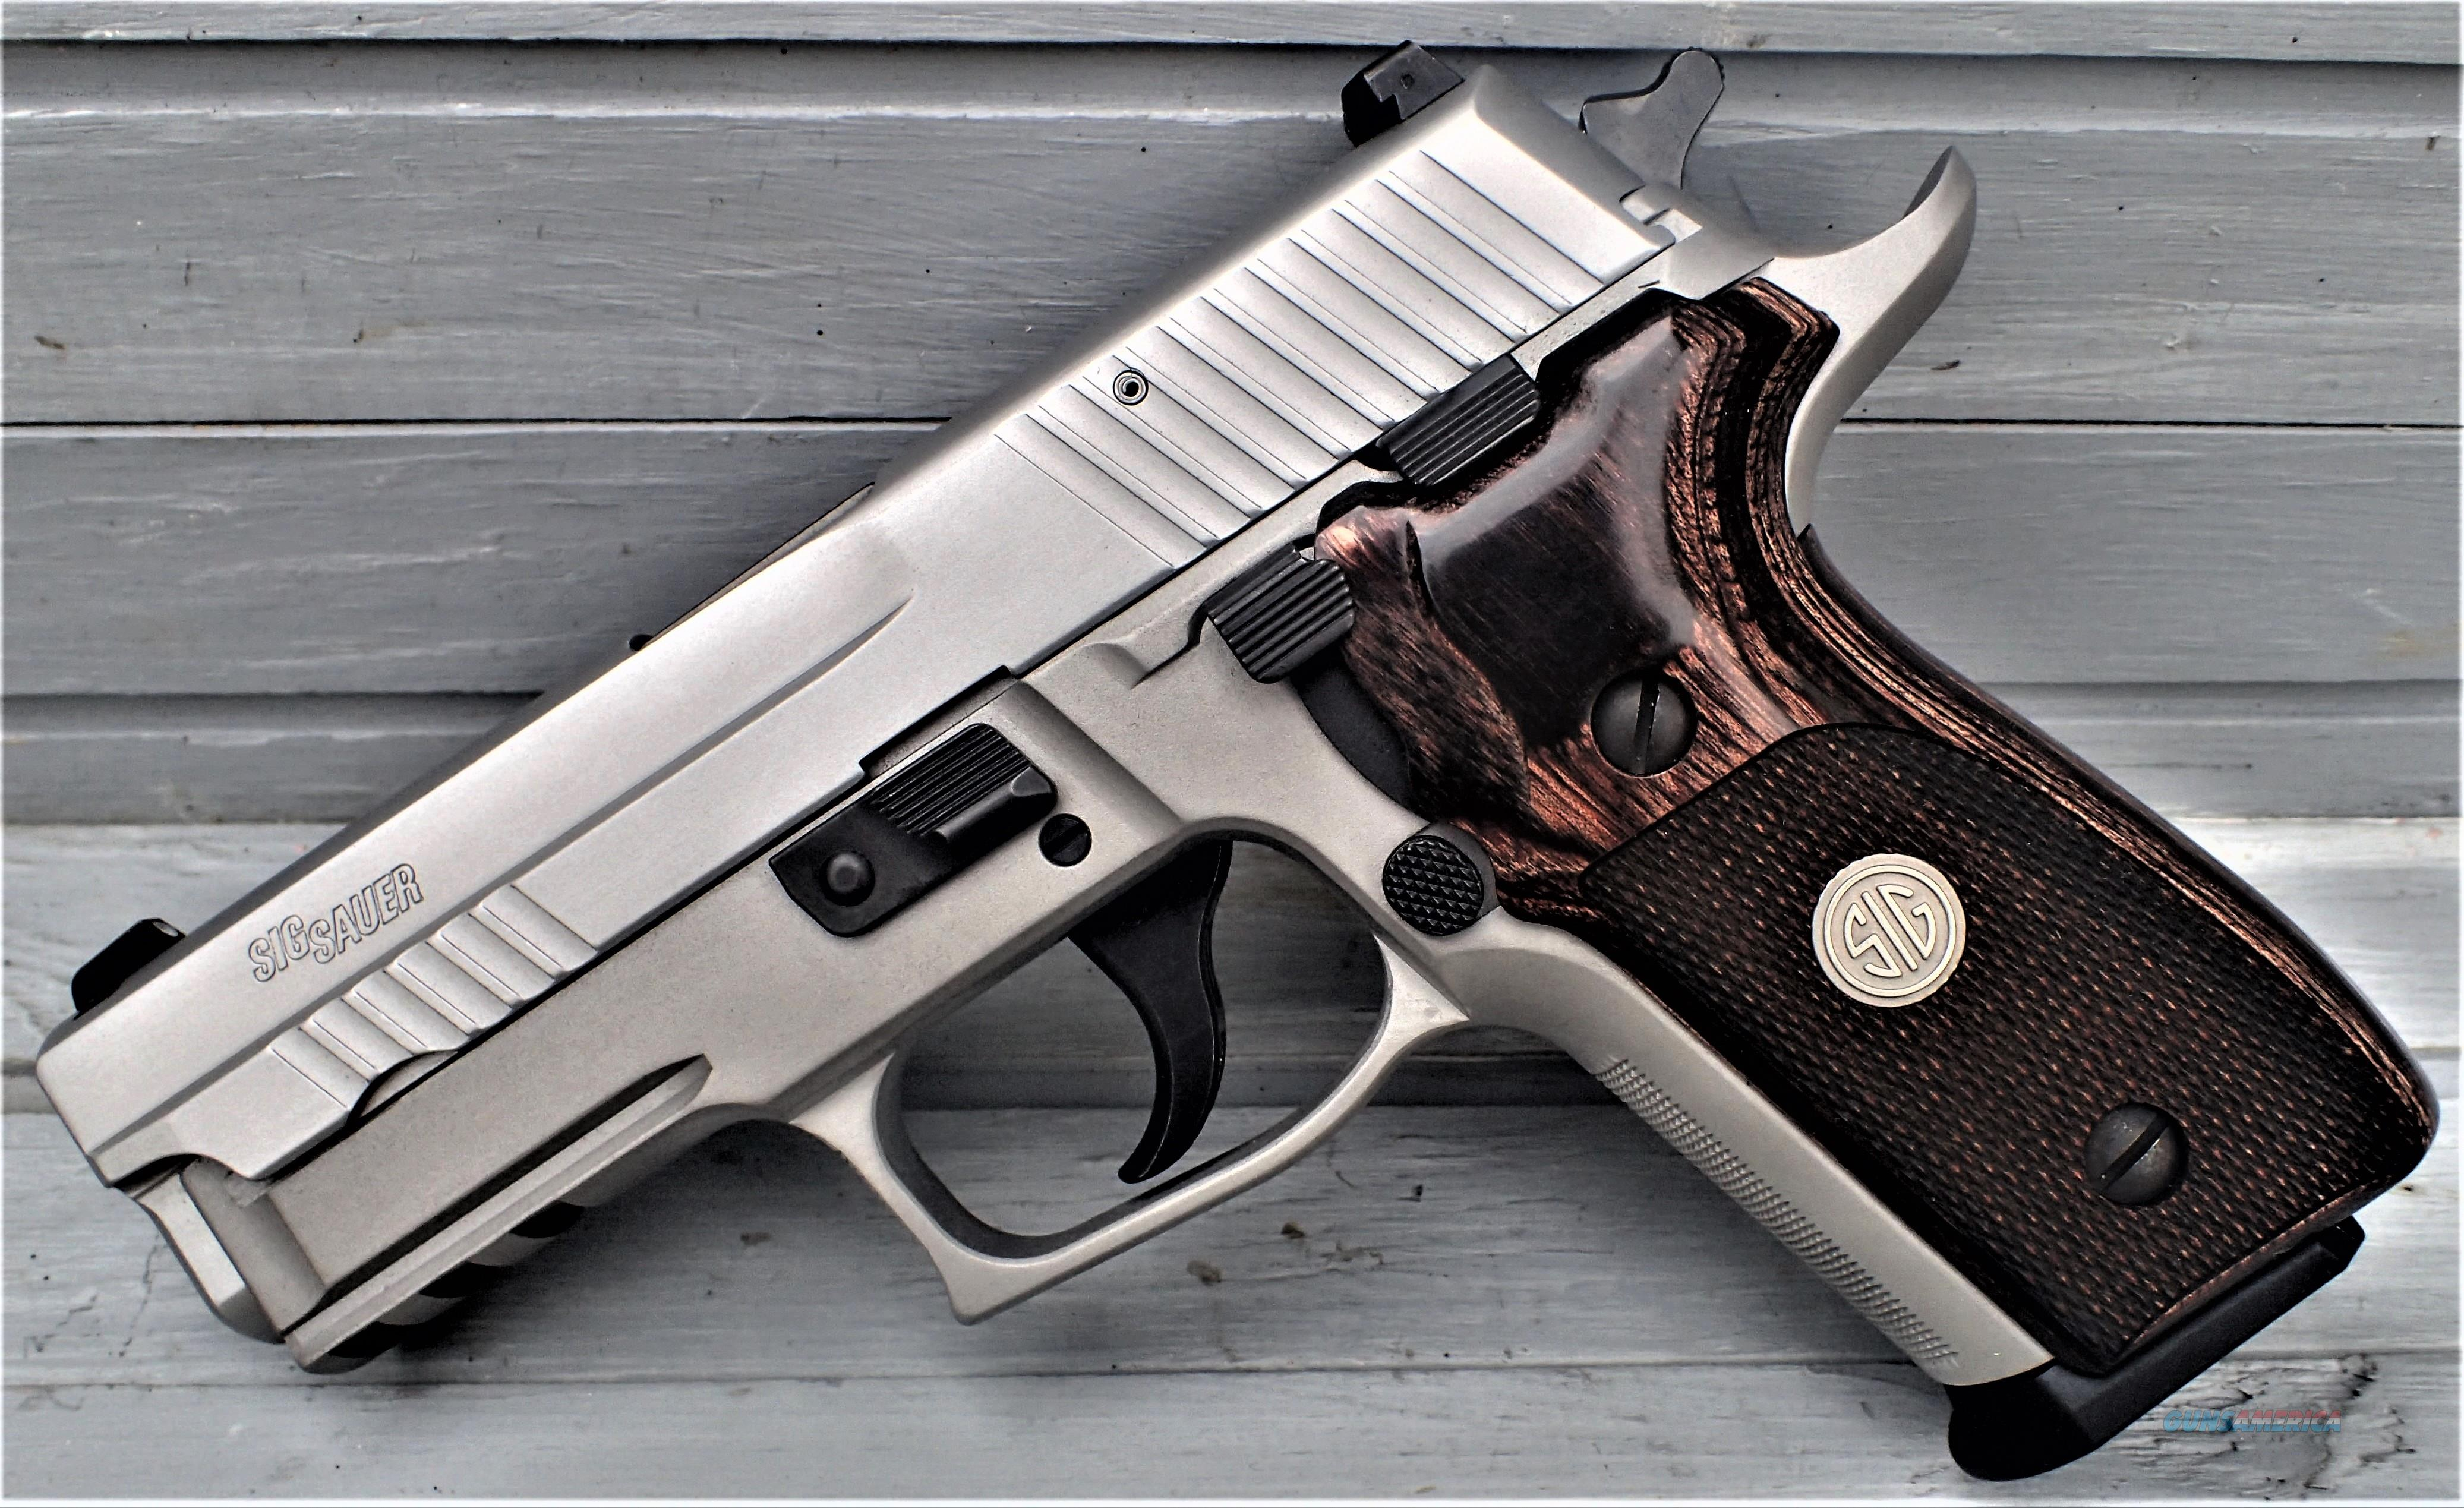 SIG P229 Night/s TALO Custom Grips /EZ PAY $63  Guns > Pistols > Sig - Sauer/Sigarms Pistols > P229